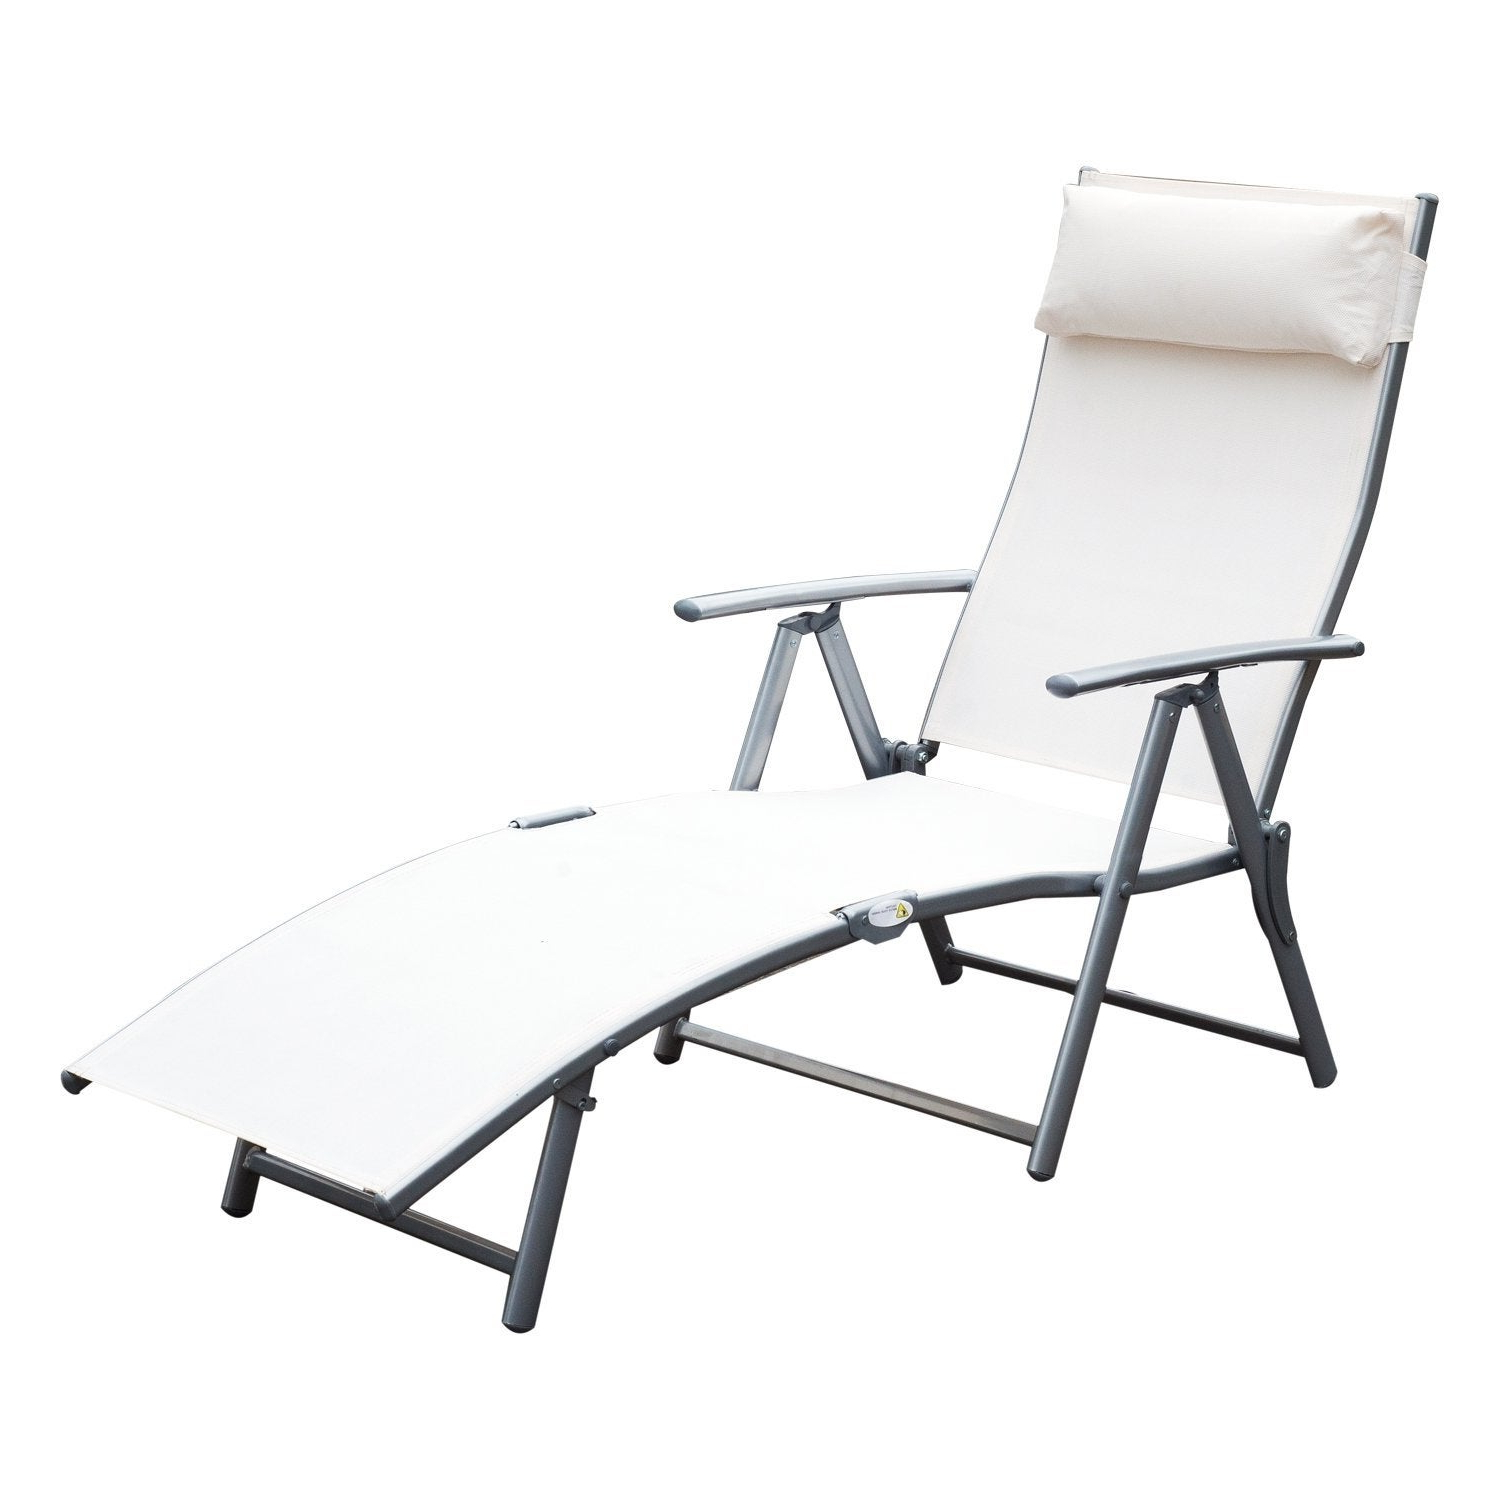 Favorite Steel Sling Fabric Outdoor Folding Chaise Lounges For Outsunny Steel Sling Fabric Outdoor Folding Chaise Lounge Chair Recliner – Cream White (View 2 of 25)